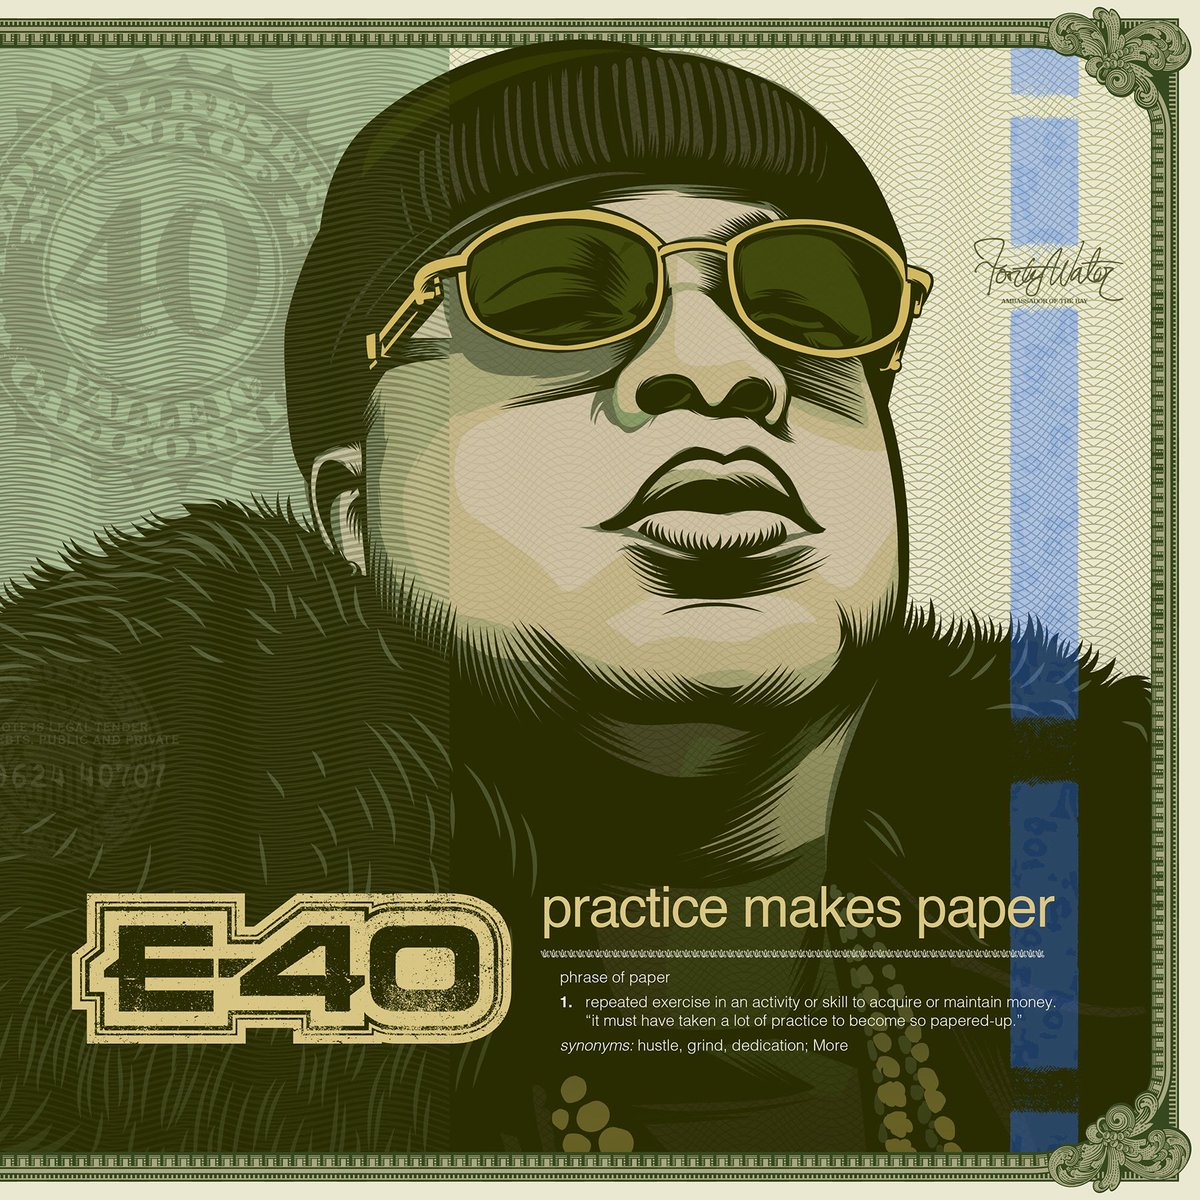 RT @E40: E-40 New solo Album  PRACTICE MAKES PAPER  07/26/19 ???????????????????????? https://t.co/48Z90DforO